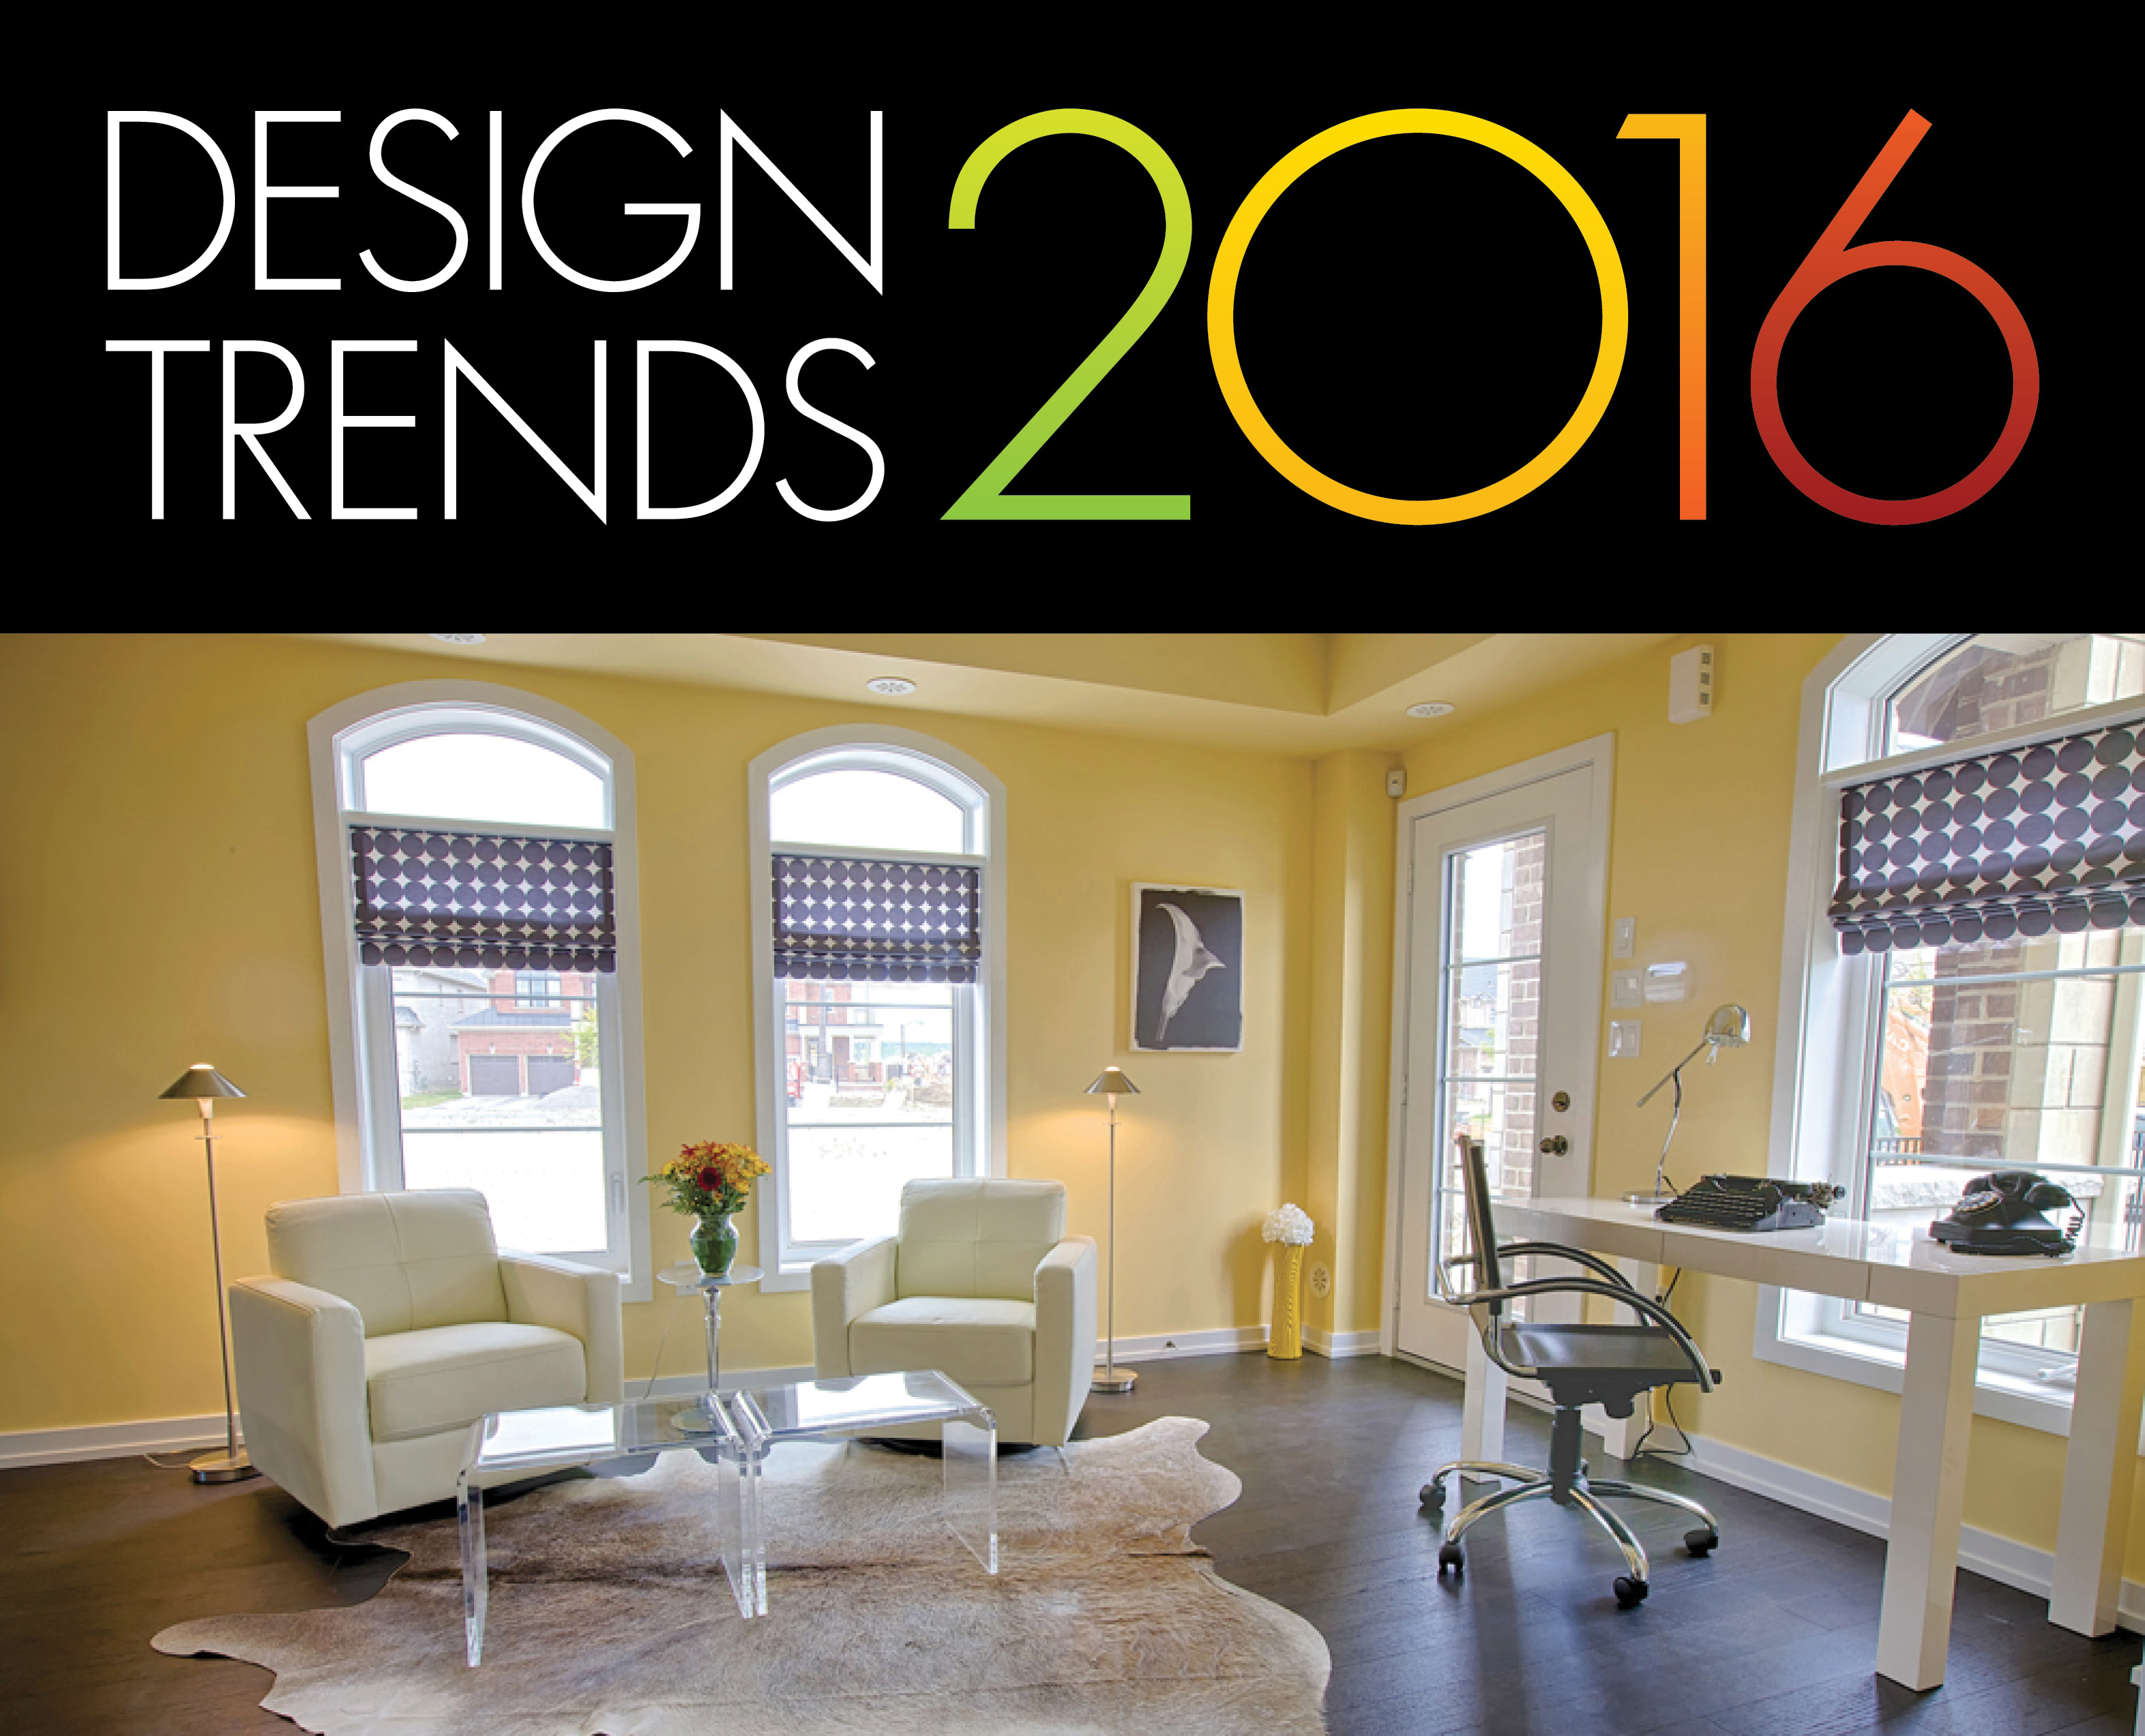 Current Furniture Trends. Design_trends2016b Current Furniture Trends E